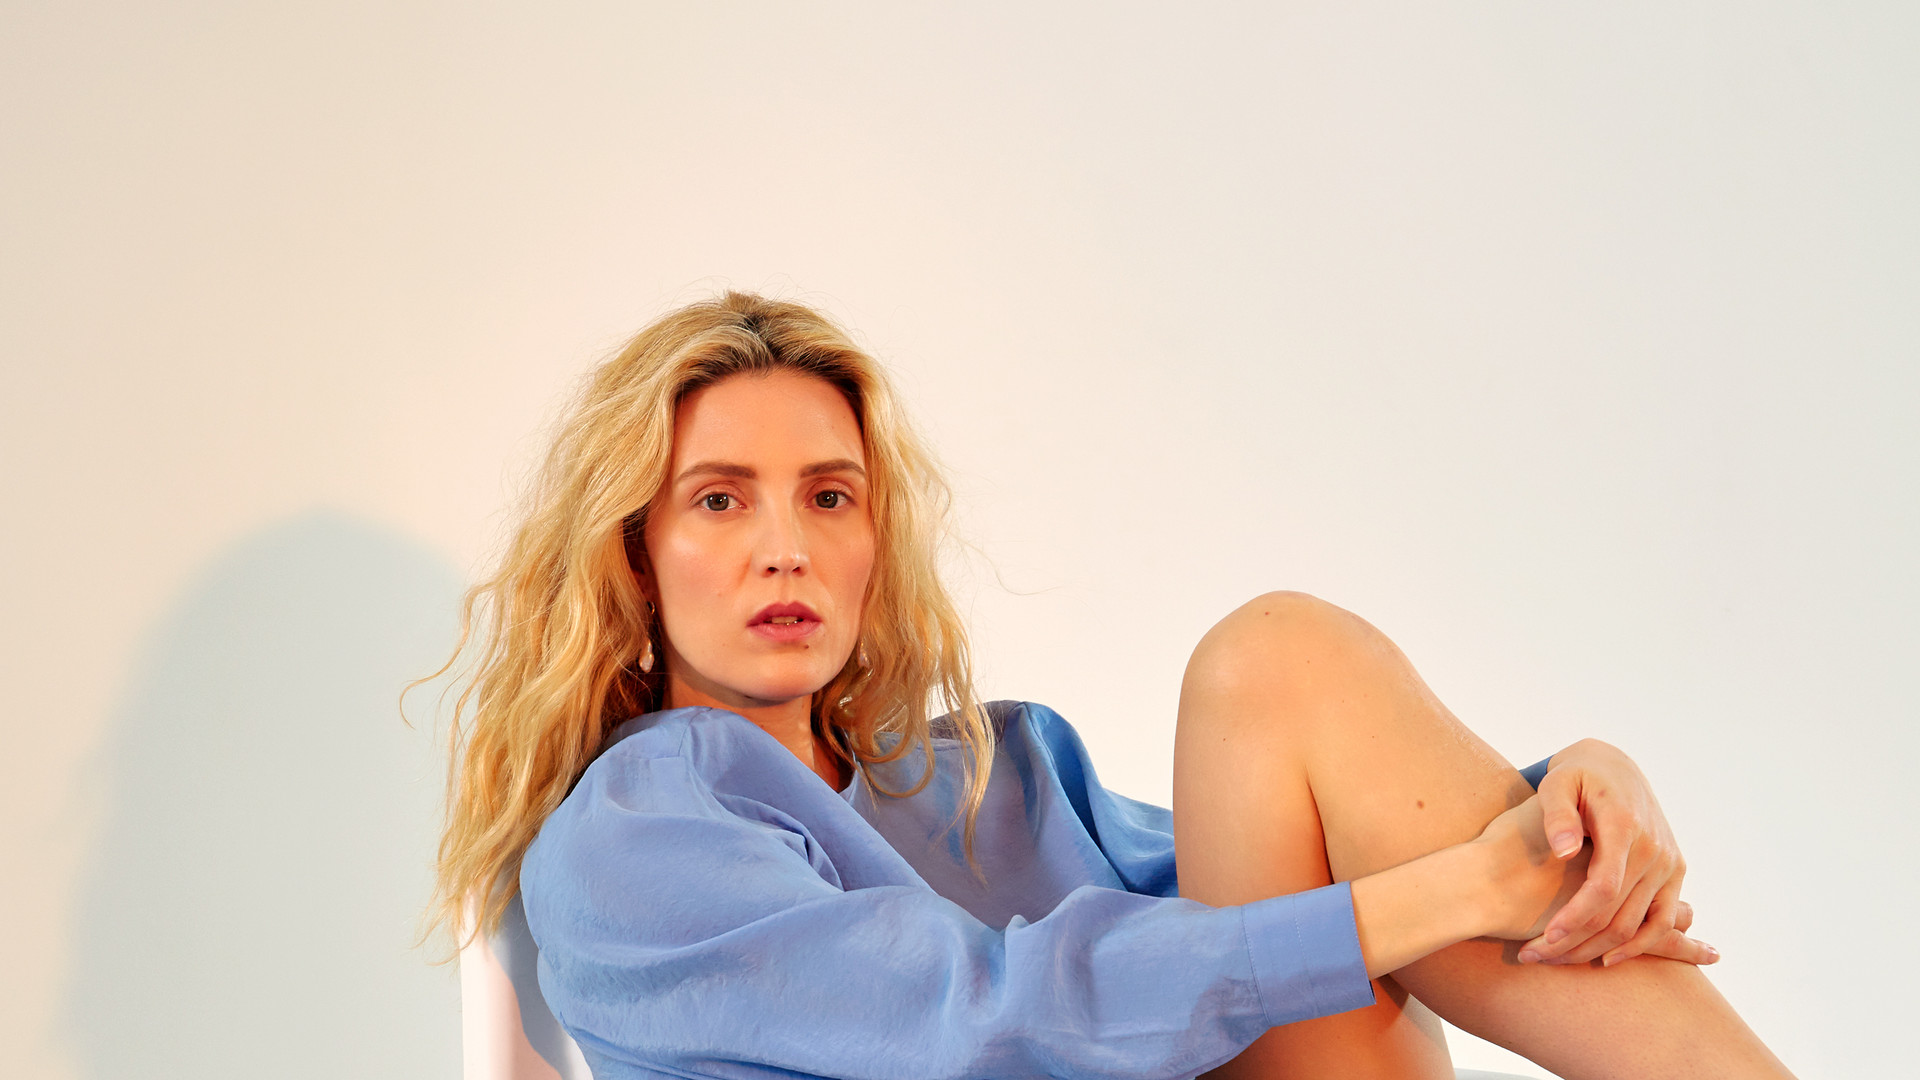 EVELYNE_BROCHU_003_02.jpg